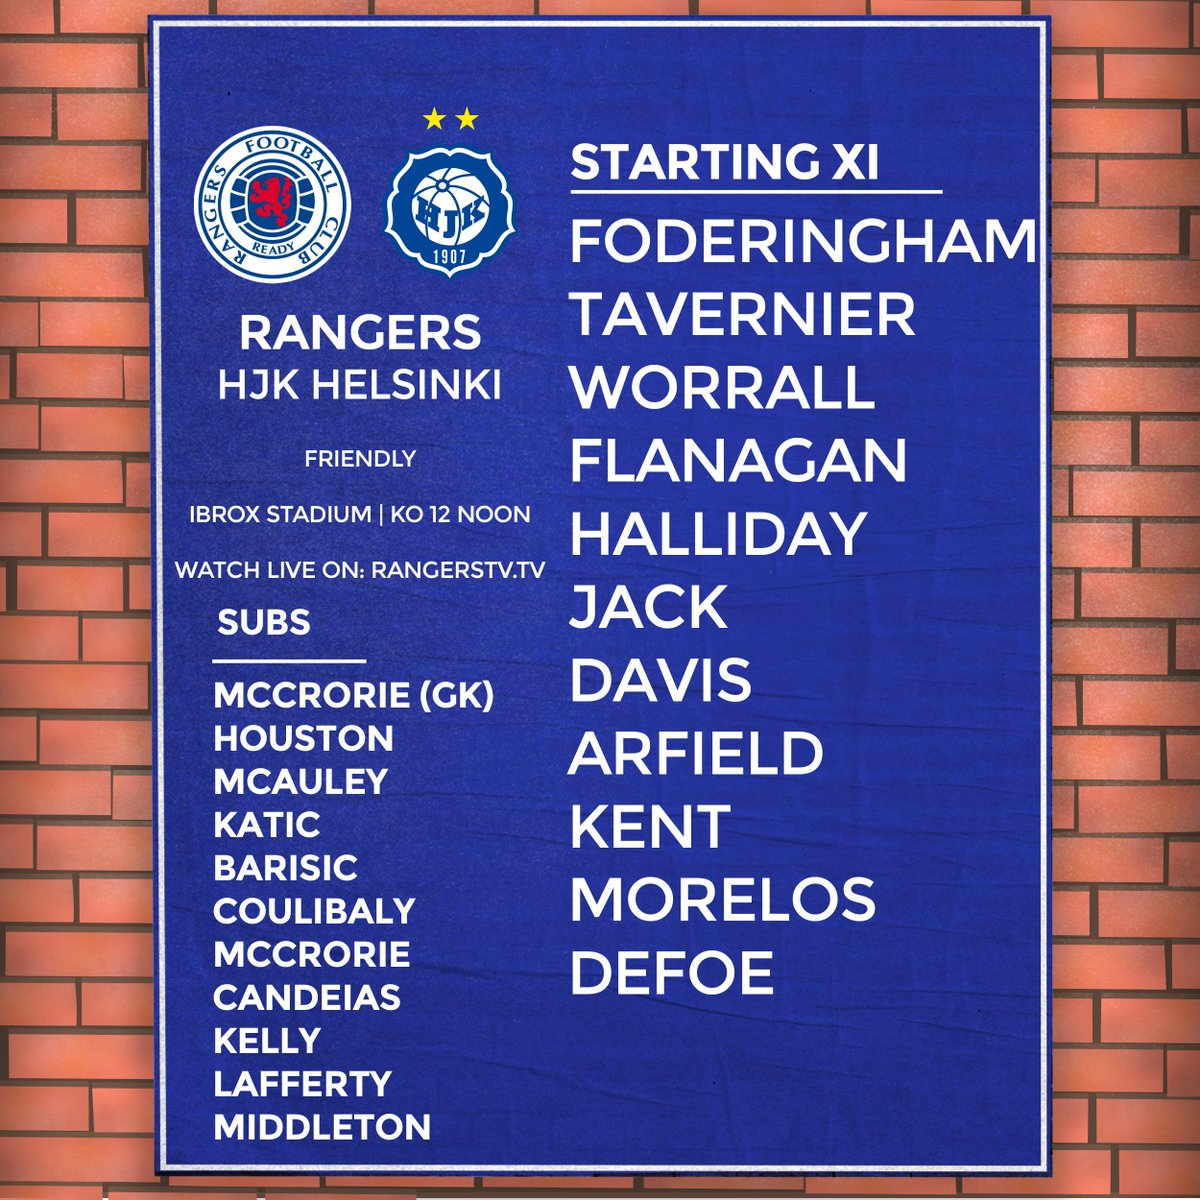 🆕 Your #RangersFC team for today's friendly match against @hjkhelsinki. You can watch the match live on @RangersTV as Defoe & Davis both start at Ibrox.  ▪️ Buy The Match Now:    ▪https://t.co/9lRFTr6BVa️ Subscribe To RangersTV: https://t.co/t1IRcqTluP